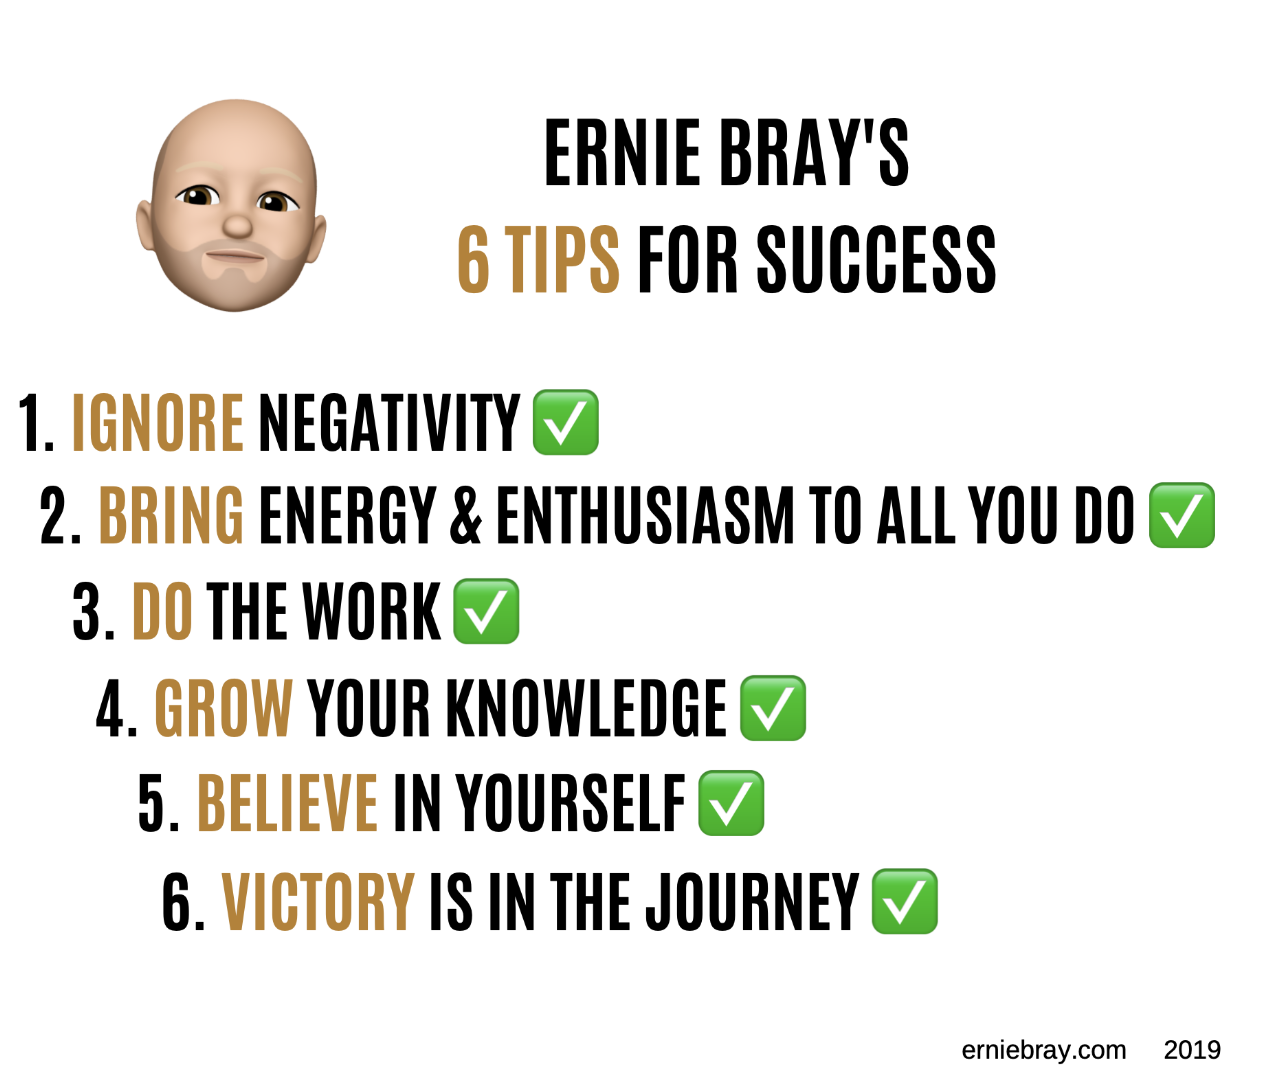 If you liked these tips, check out this article:   The Victory Is In The Journey